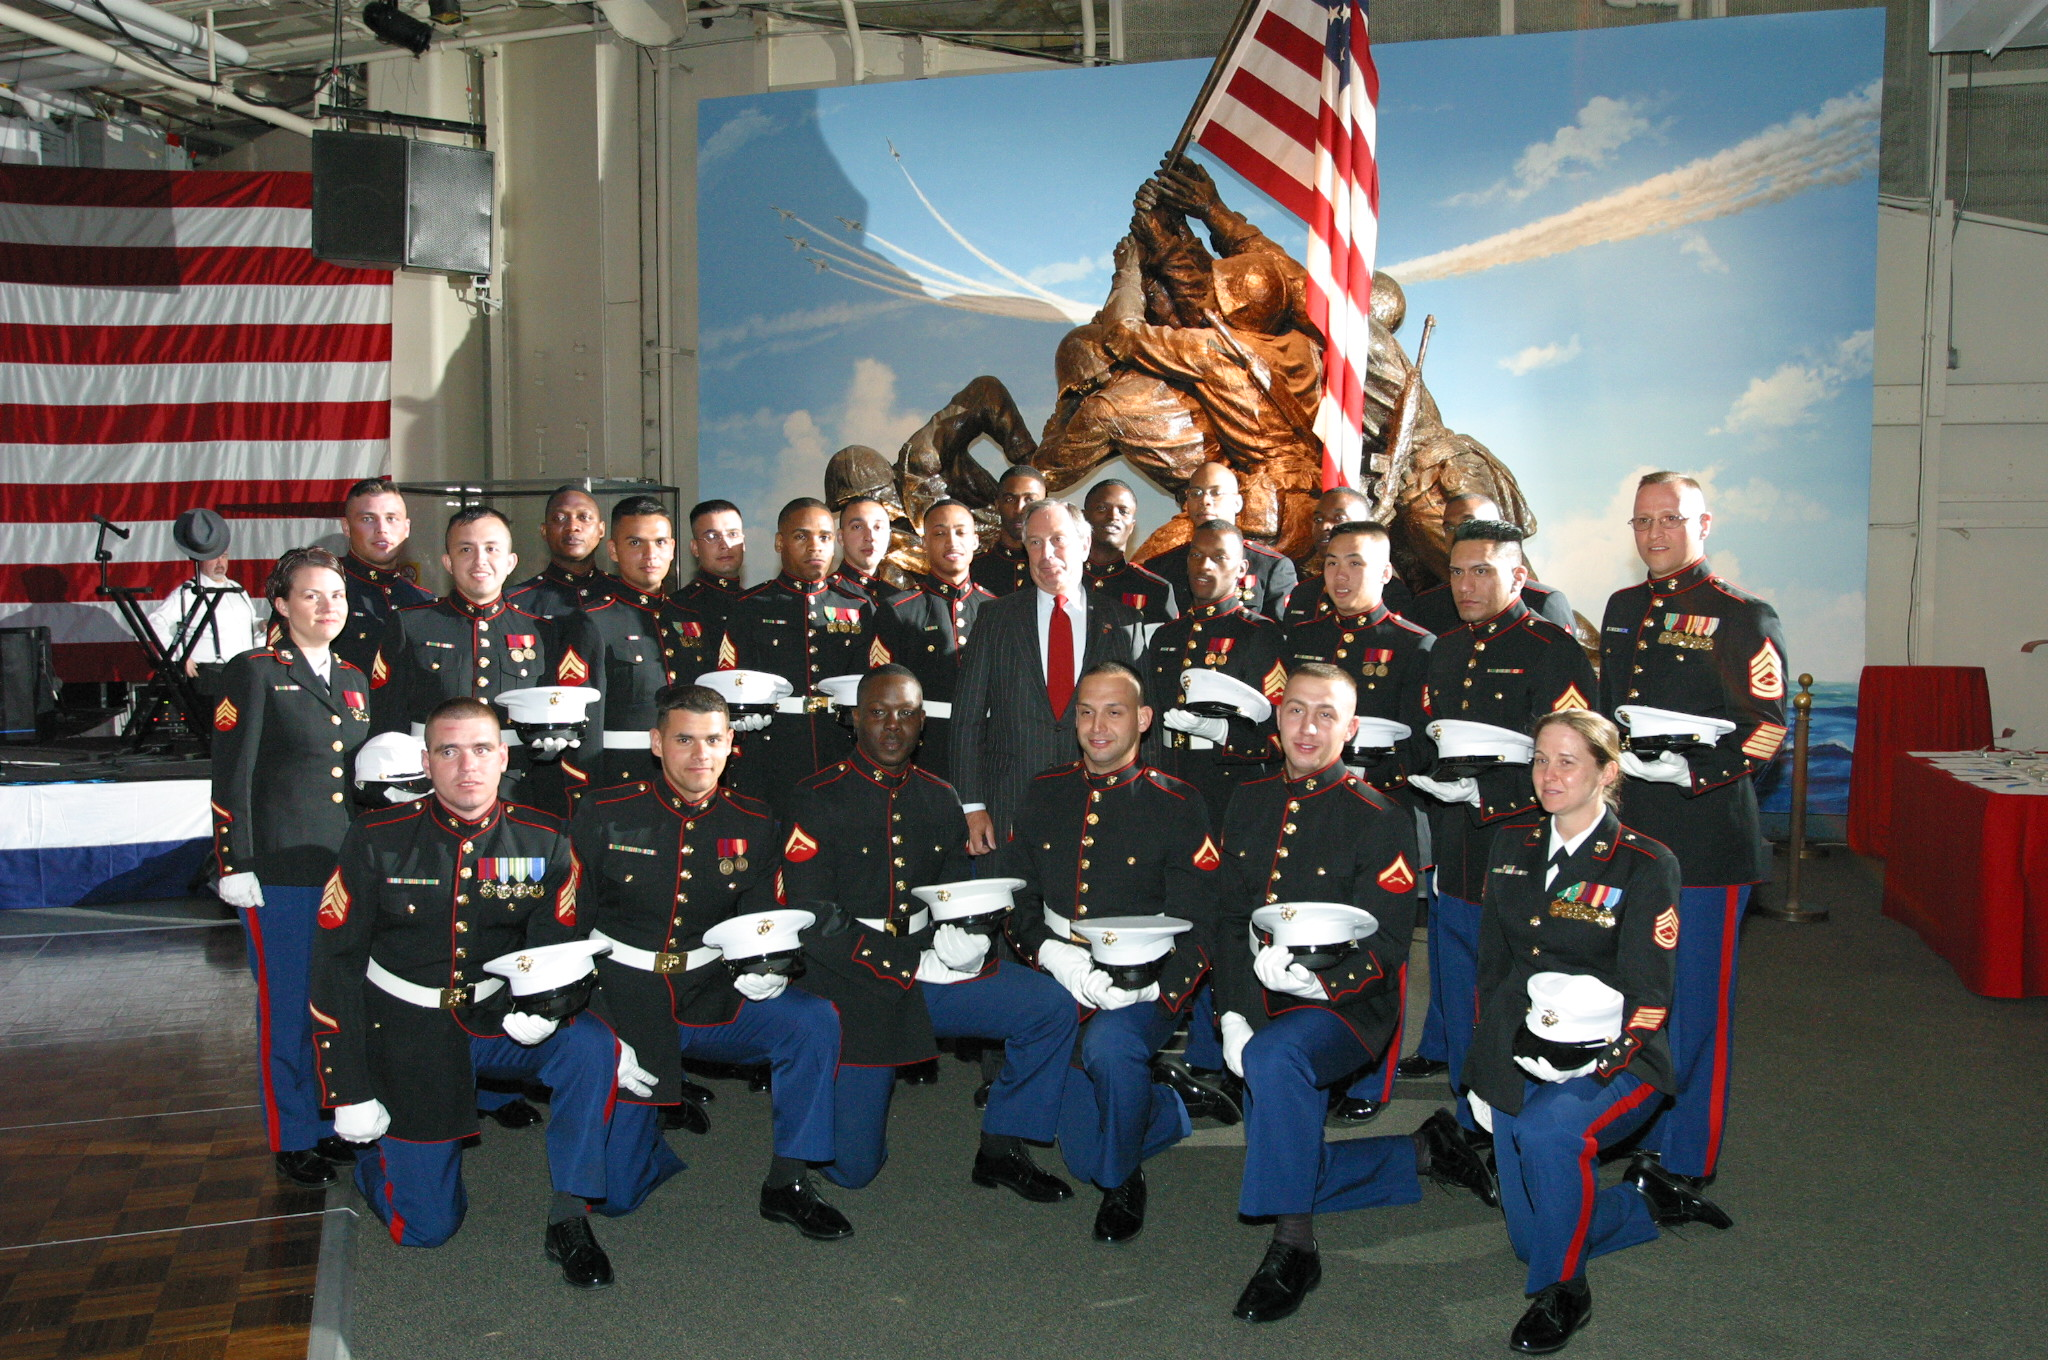 Mayor Michael Bloomberg poses with U. S. Marine Corps men and women at the Intrepid Air and Space Museum on May 23, 2001. Mayor Michael R. Bloomberg Collection, NYC Municipal Archives.